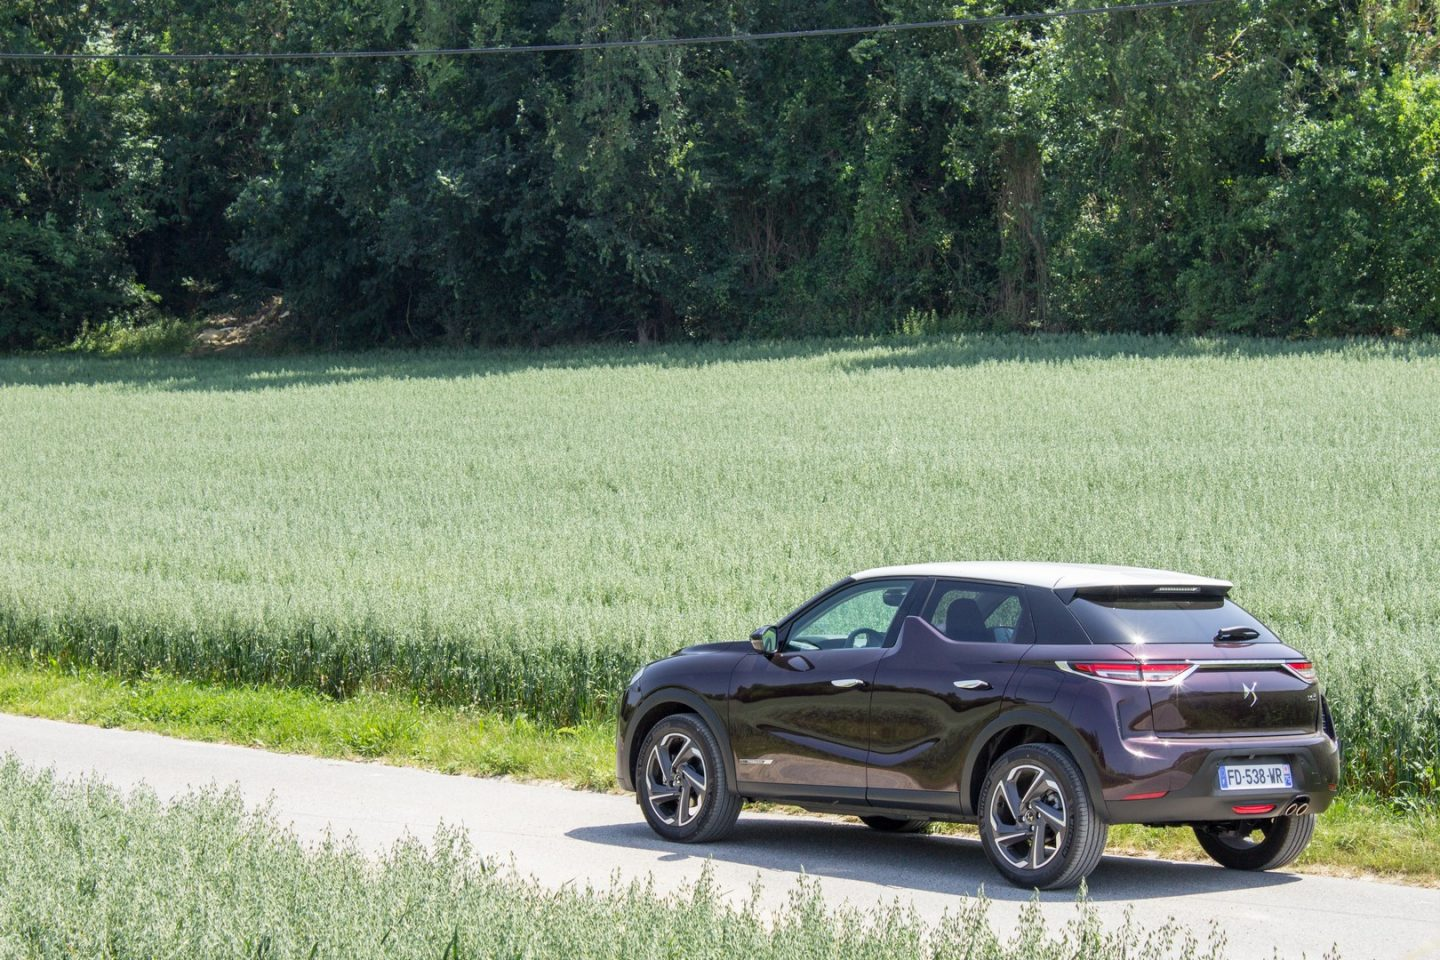 2018 - [DS Automobiles] DS 3 Crossback (D34) - Page 39 IMG_6778-1440x960